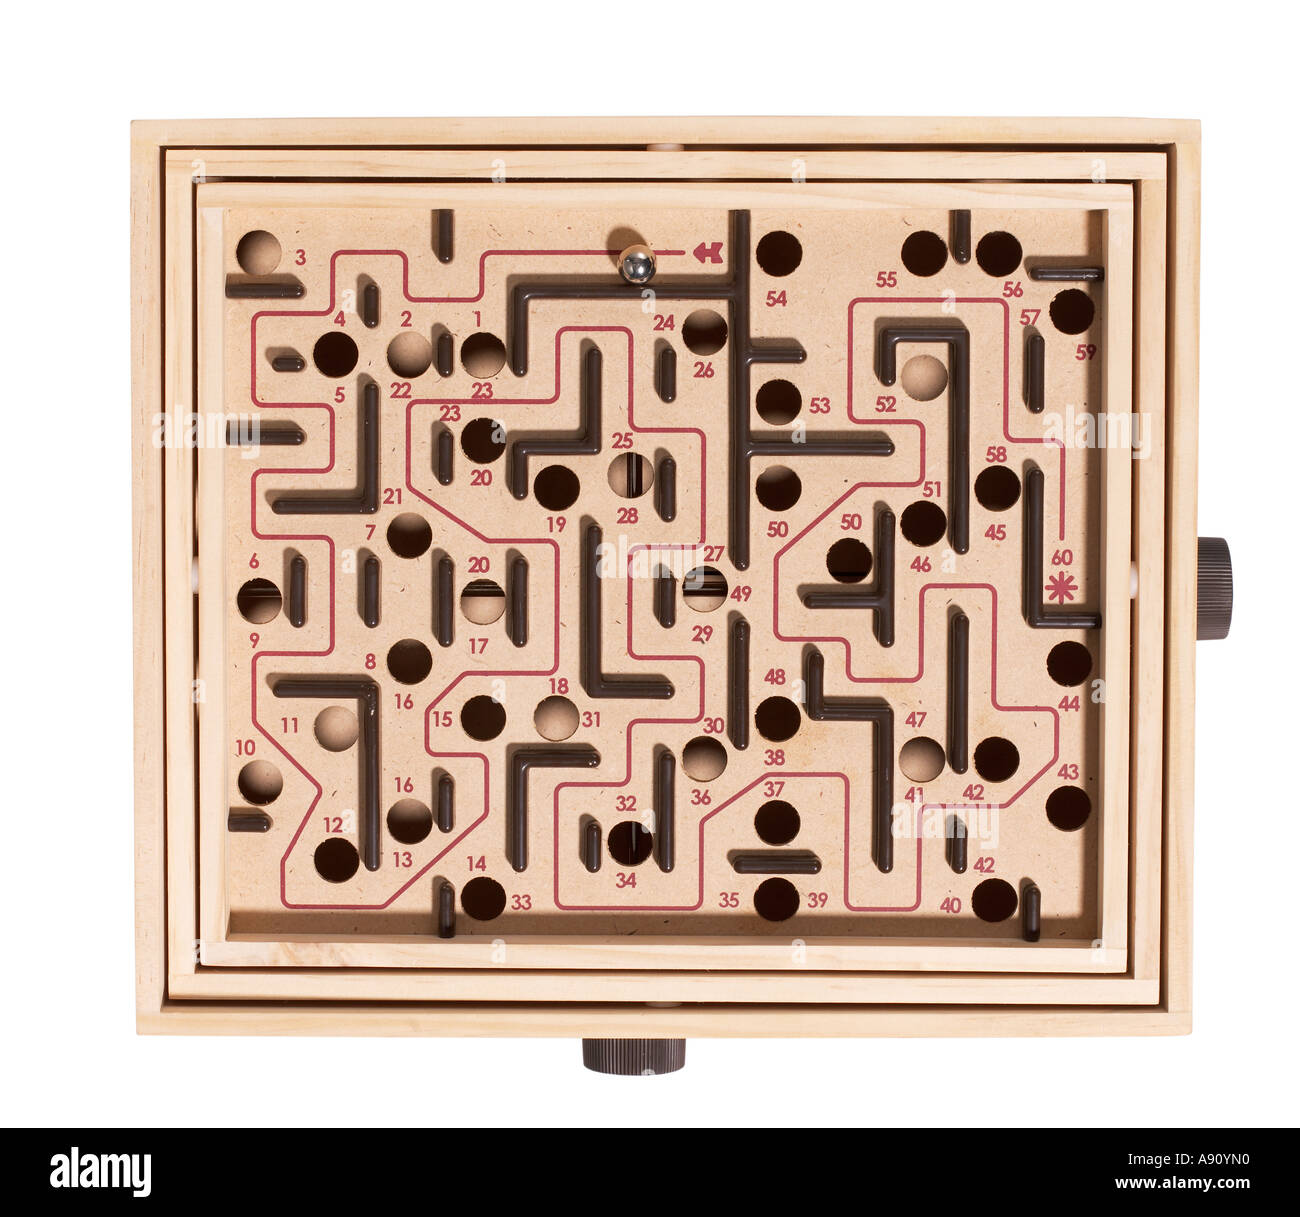 Labyrinth Game elevated view - Stock Image